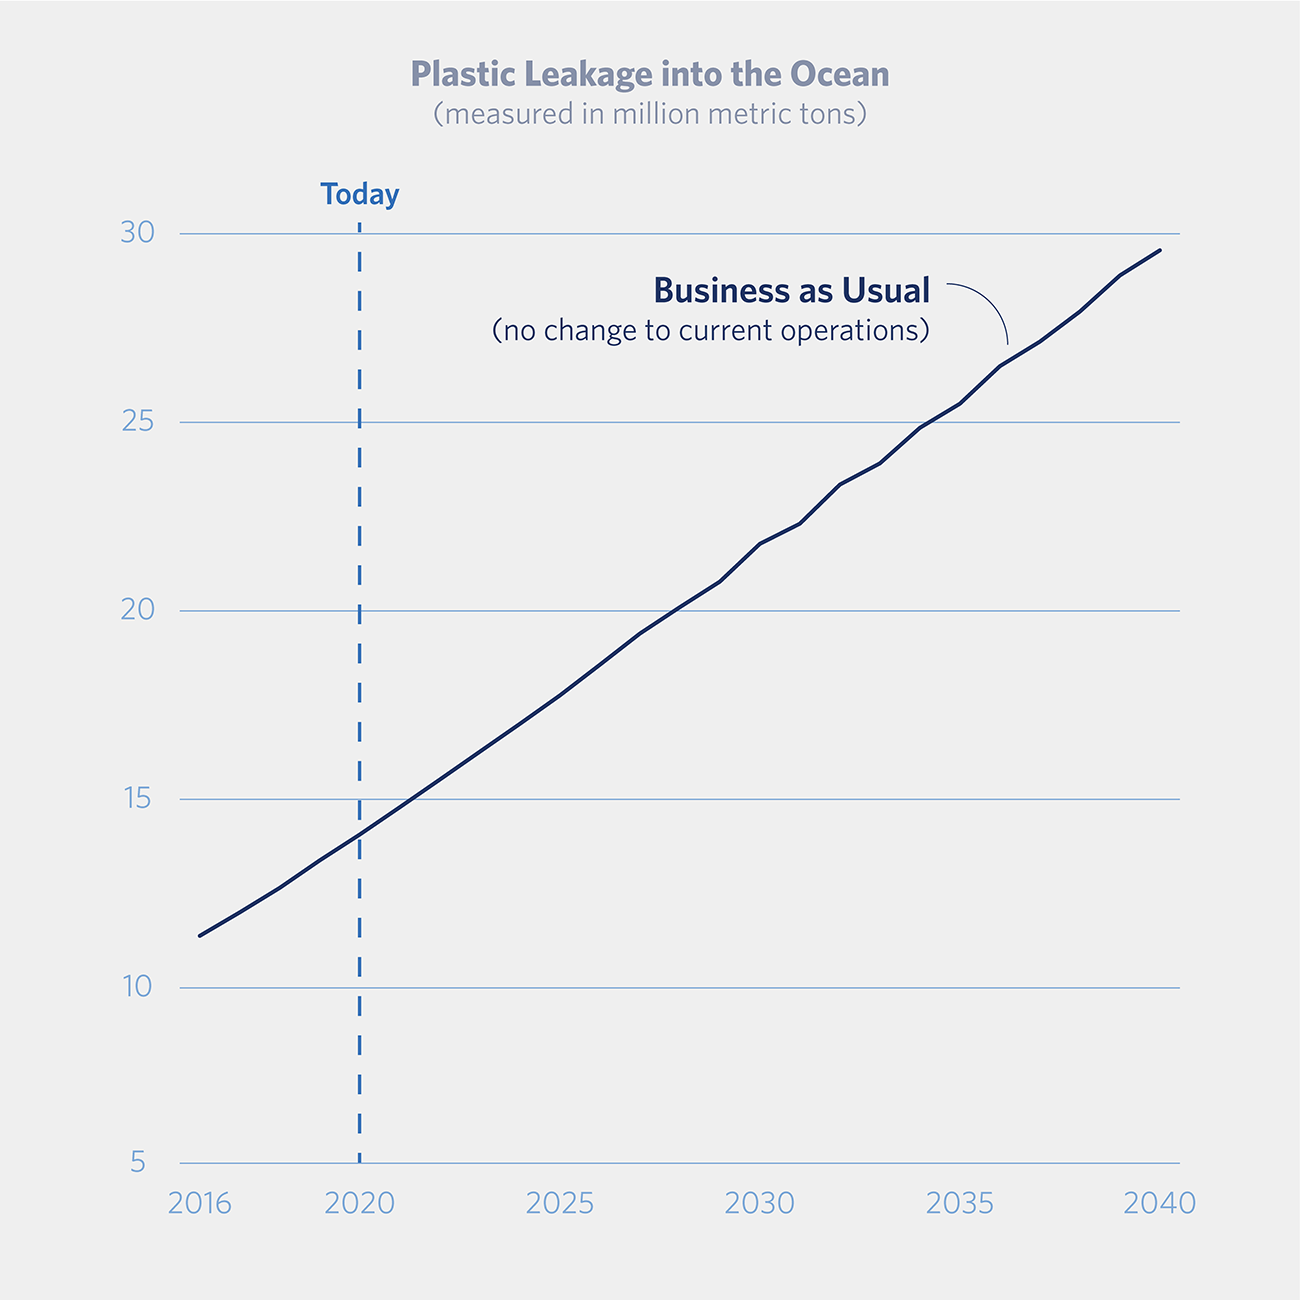 graph showing business-as-usual plastic waste growing from under 15 million metric tons today to nearly 30 in 2040